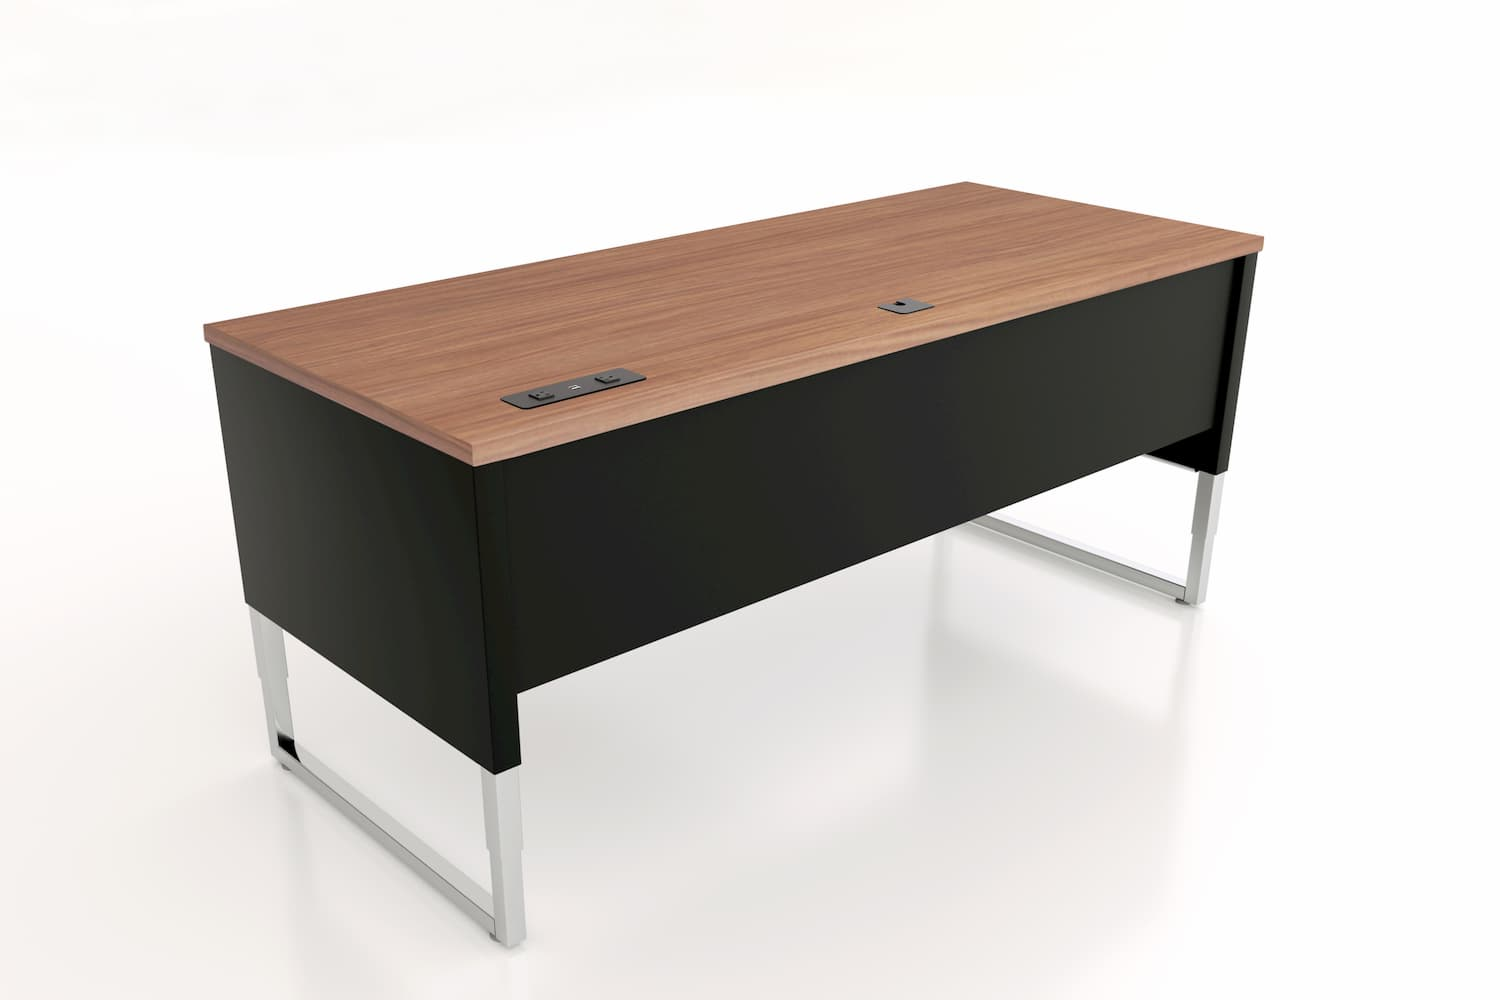 Advent-Desk-ADV-7230-BK-Custom-Top-14-Back